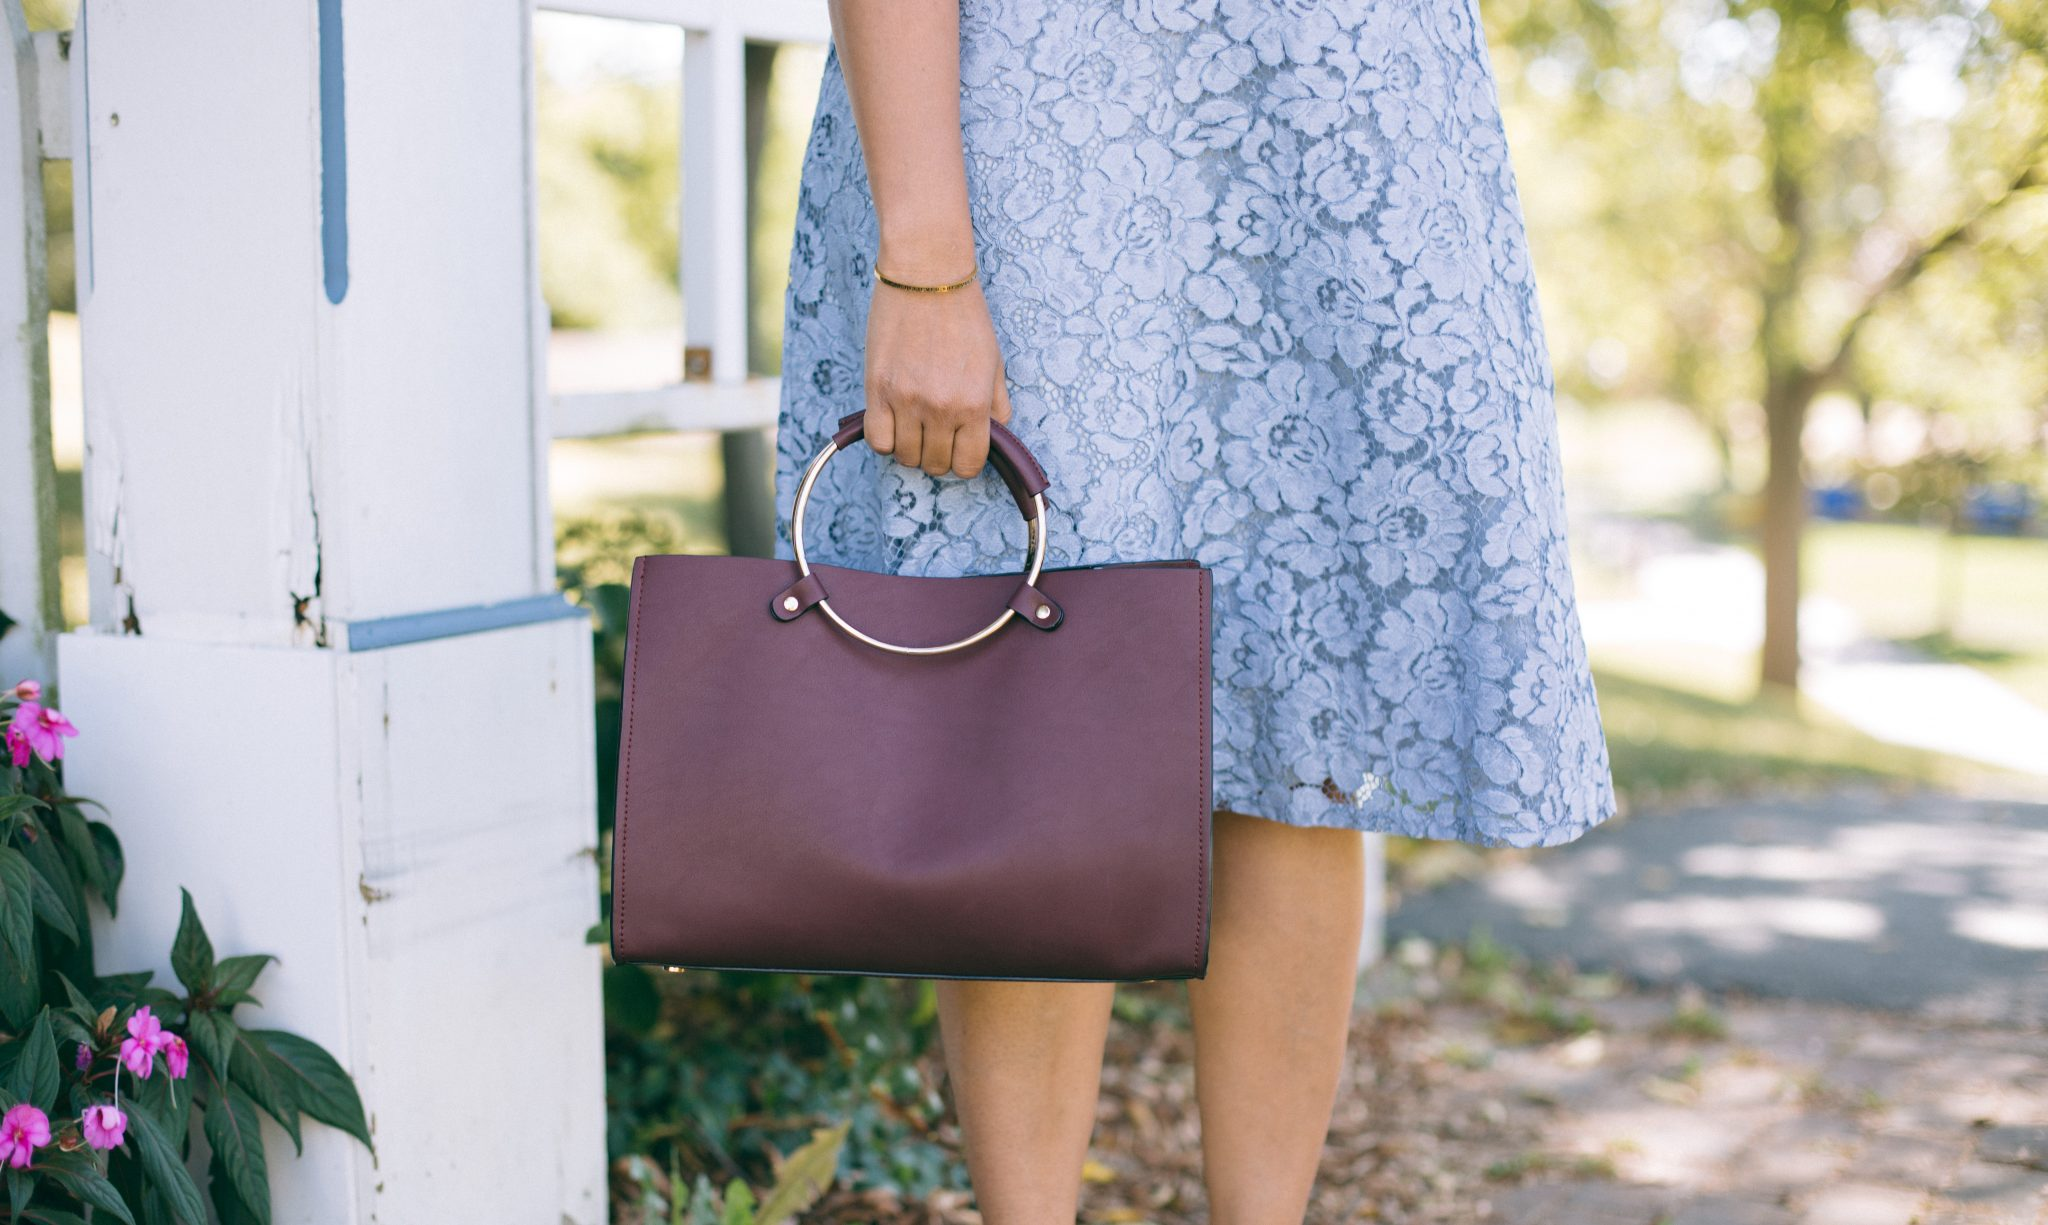 Lifestyle blogger Surekha of dreaming loud wearing Mango Metallic handle shoulder bag in burgundy 1 - Know Your Worth! featured by popular Ohio lifestyle blogger, Dreaming Loud